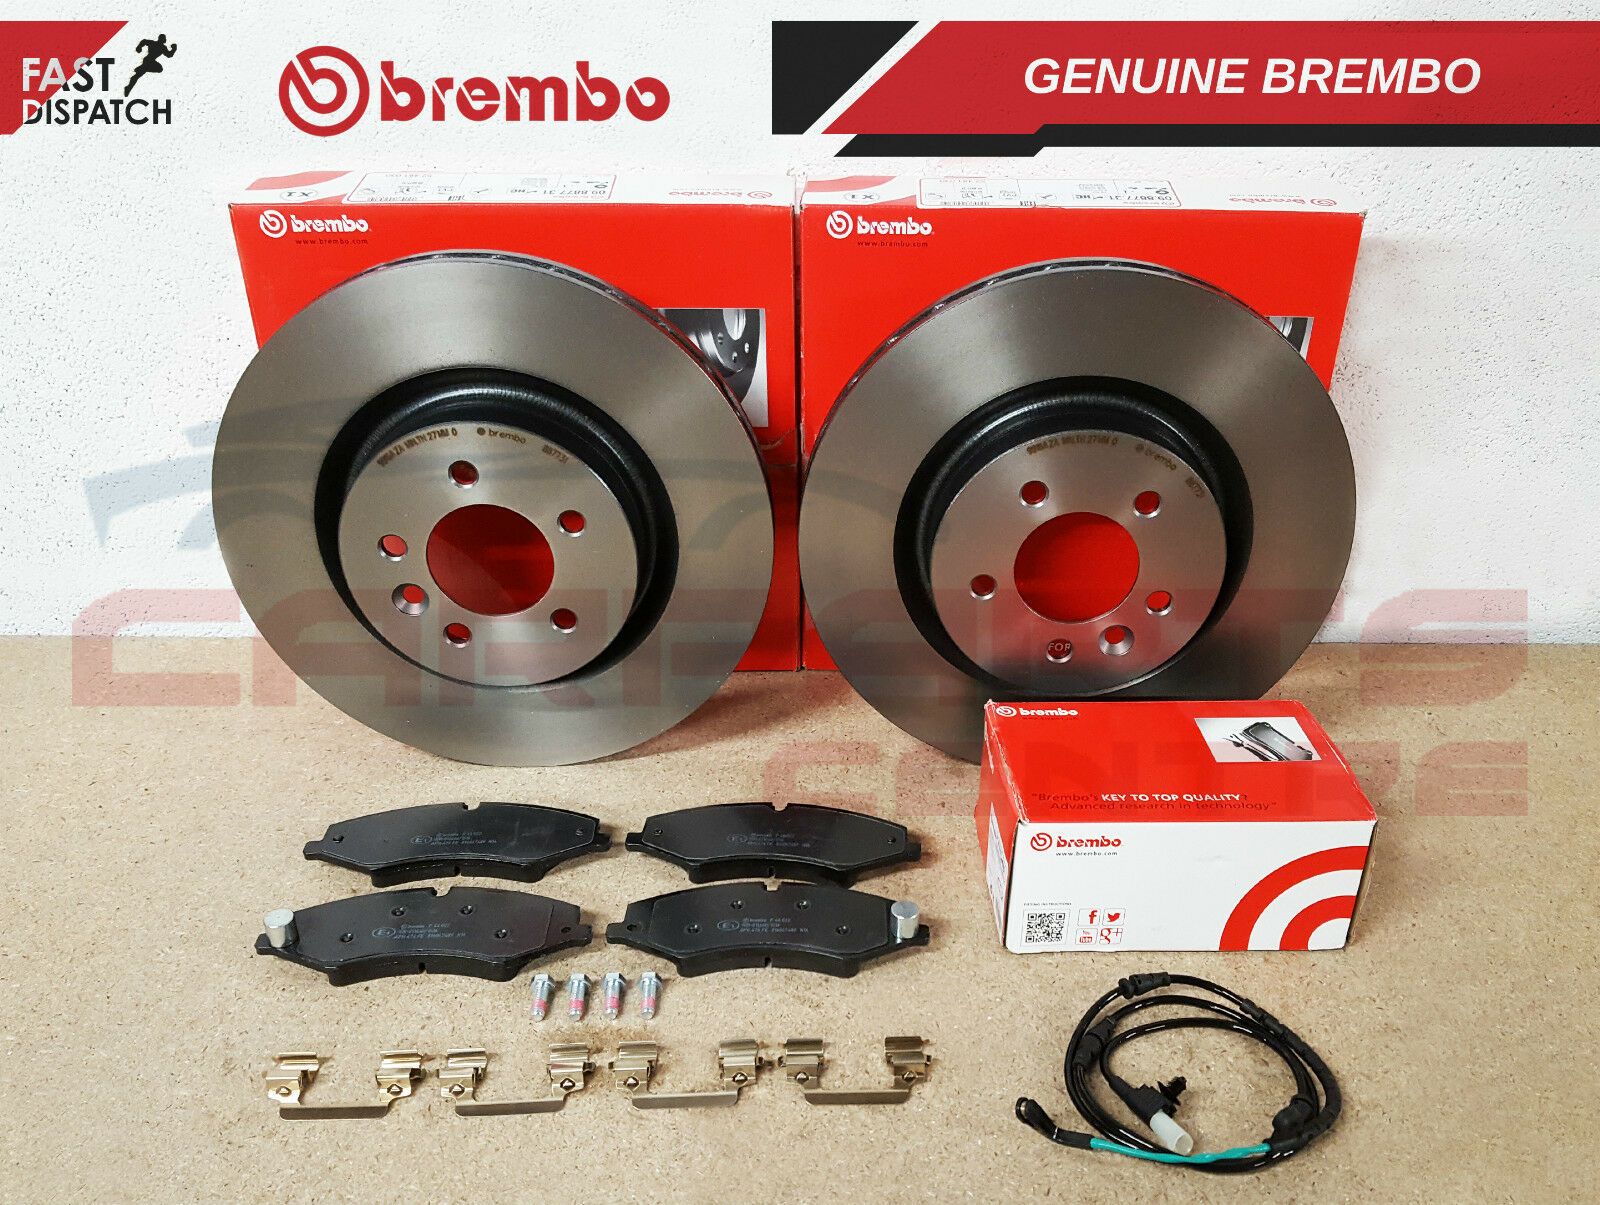 FOR RANGE ROVER SPORT LAND ROVER DISCOVER 4 FRONT BREMBO BRAKE PADS WIRE SENSOR